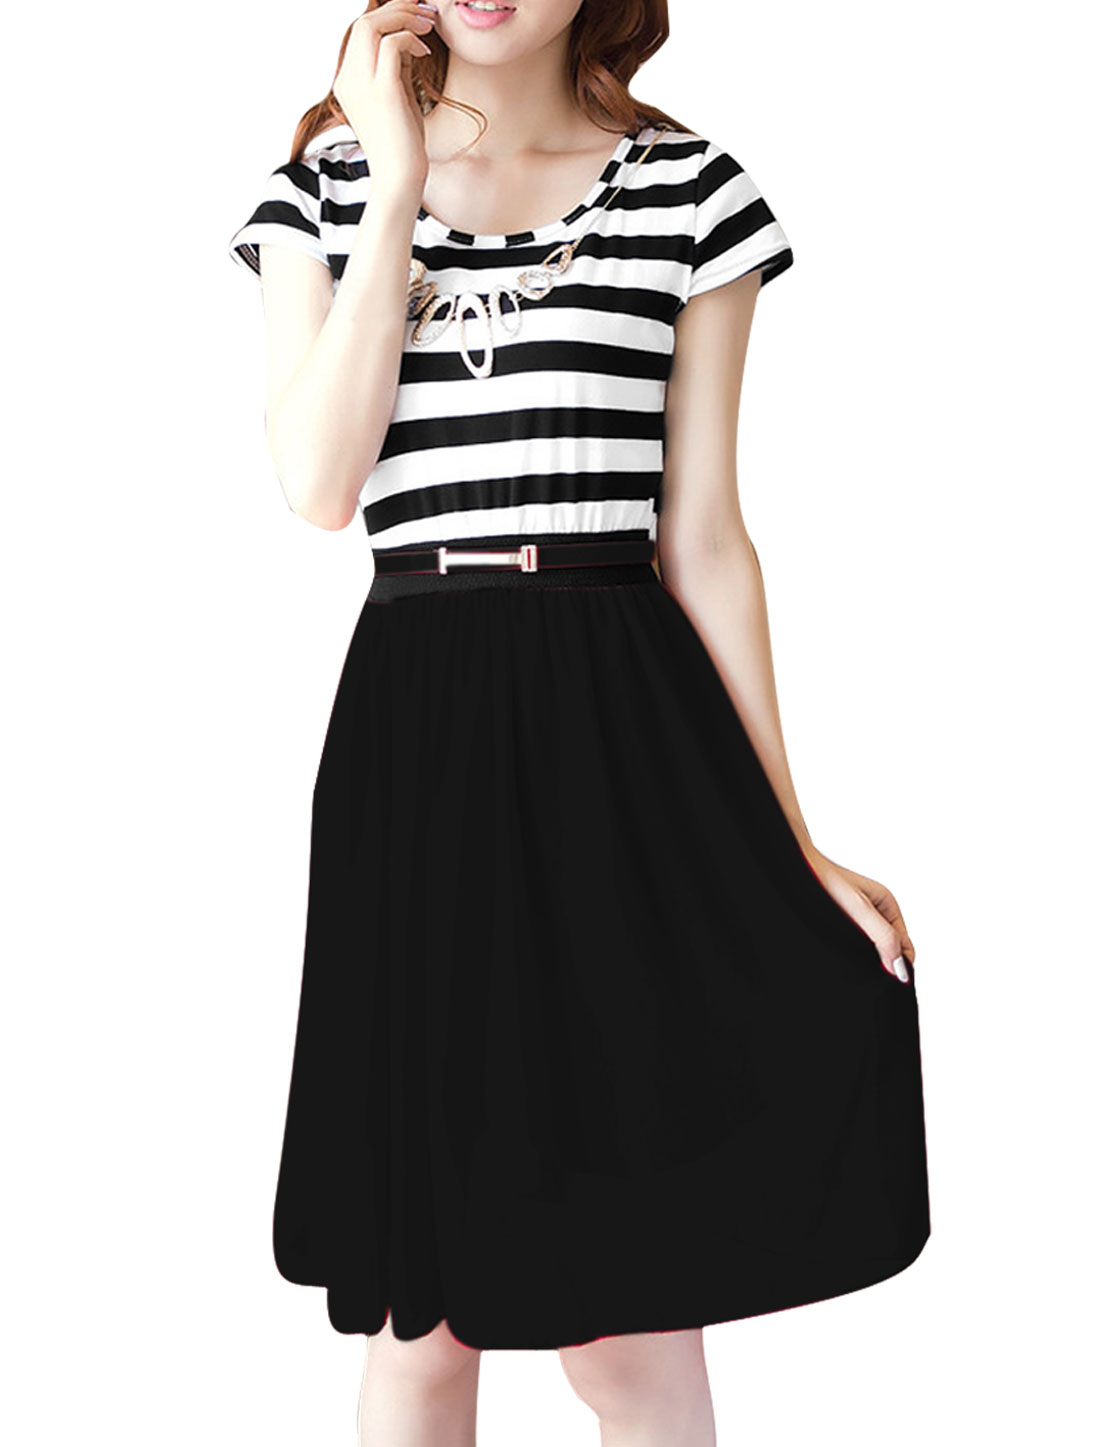 XS Black Two Tone Color Block Summer Stripes Print Casual Dress for Ladies